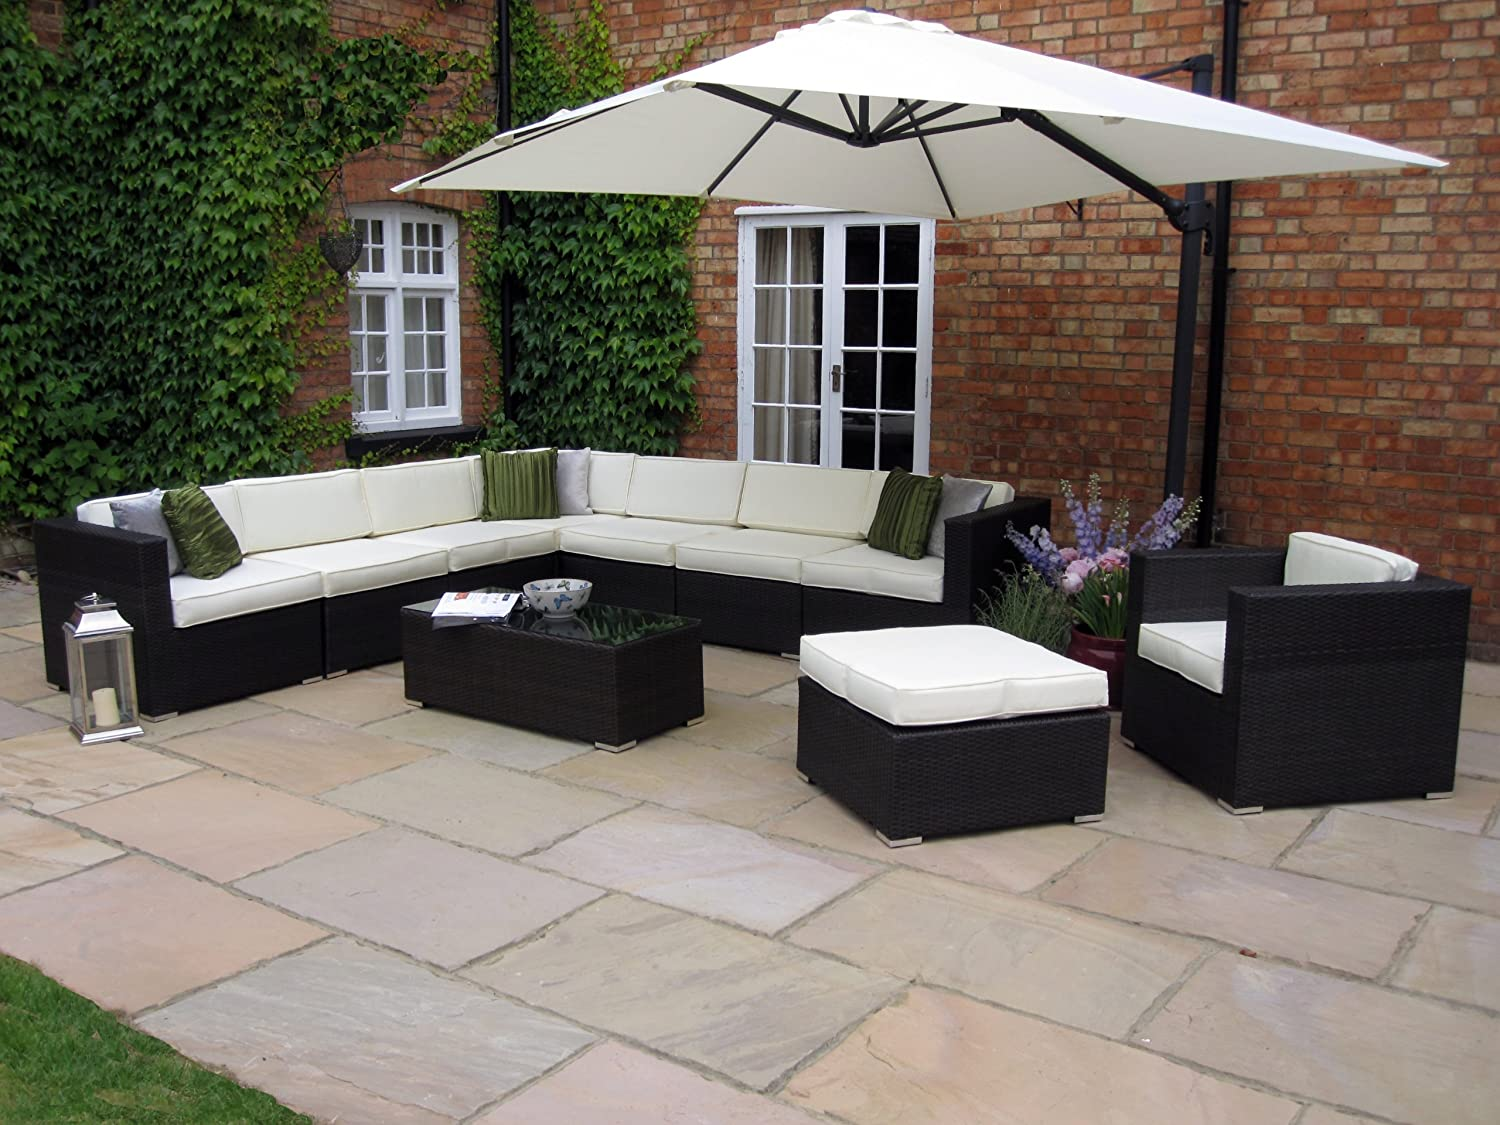 chloe luxury grey rattan garden furniture modular l shaped corner patio sofa armchair furniture set with free cover worth 200 whilst stocks last